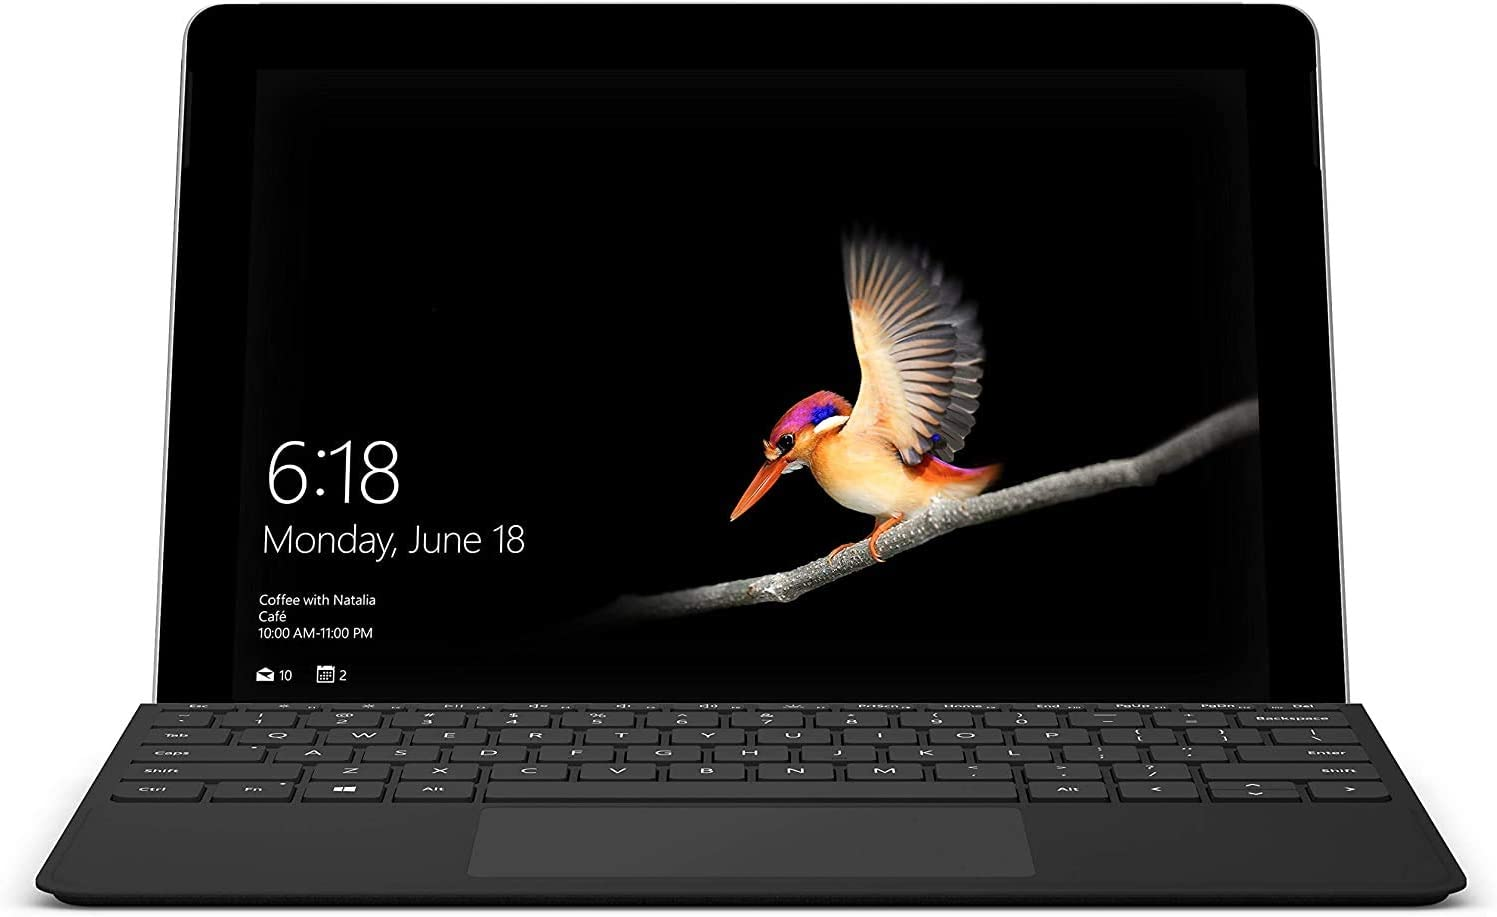 Microsoft Surface Go 10'' Touchscreen (1800x1200) PixelSense Display w/Surface Type Cover, Intel Pentium Gold 4415Y Facial Recognition USB-C Windows Ink Active Windows 10 S Mode 4GB RAM 128GB SSD